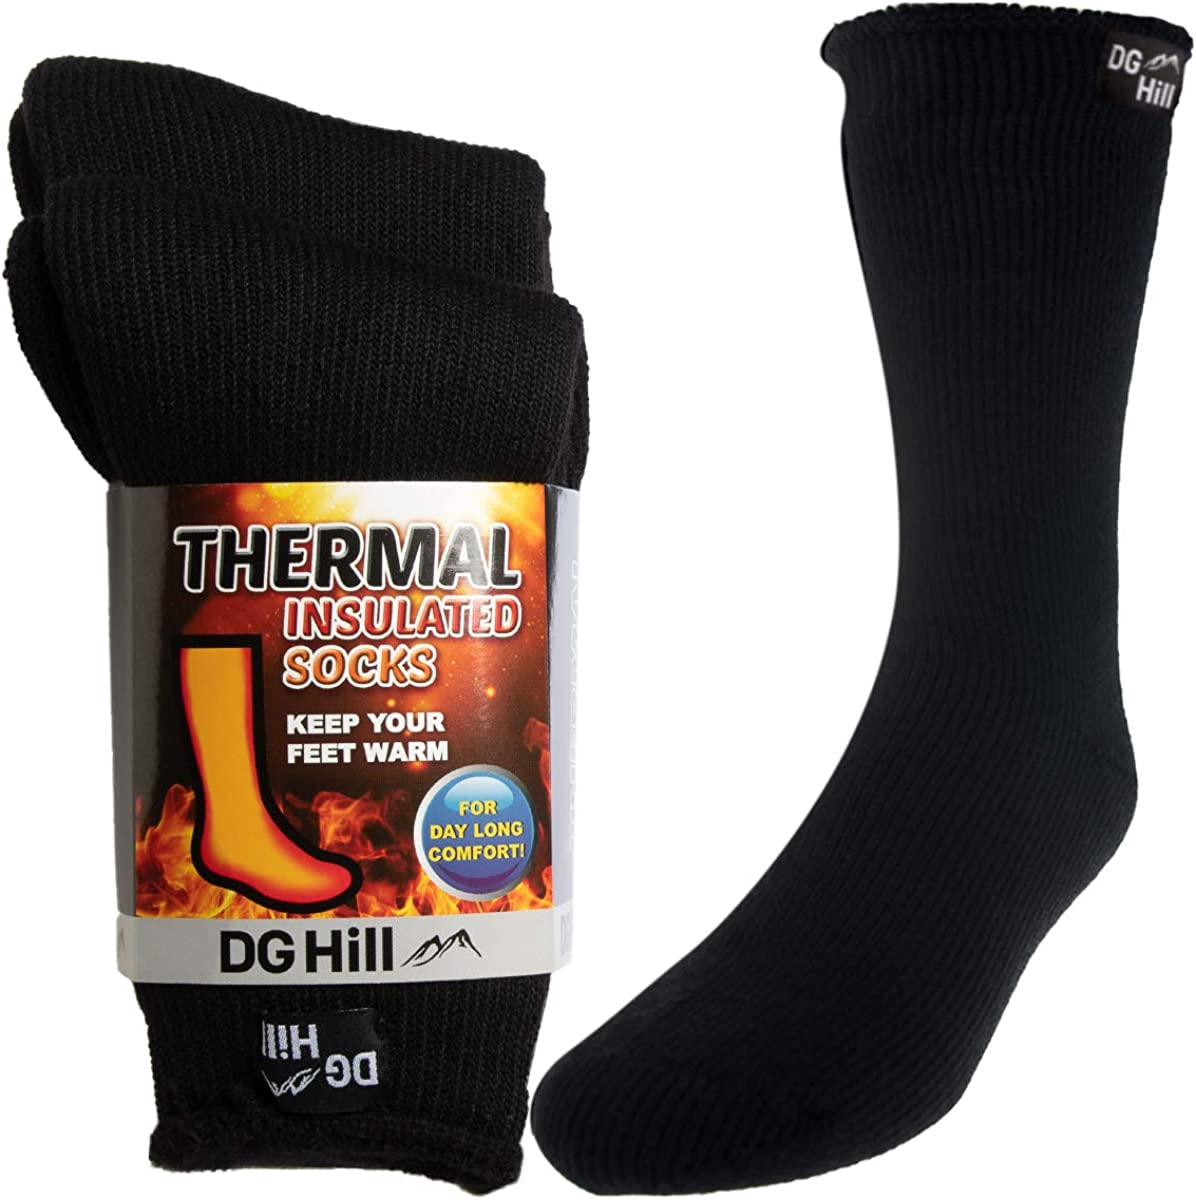 DG Hill Thick Heat-Trapping Thermal Socks